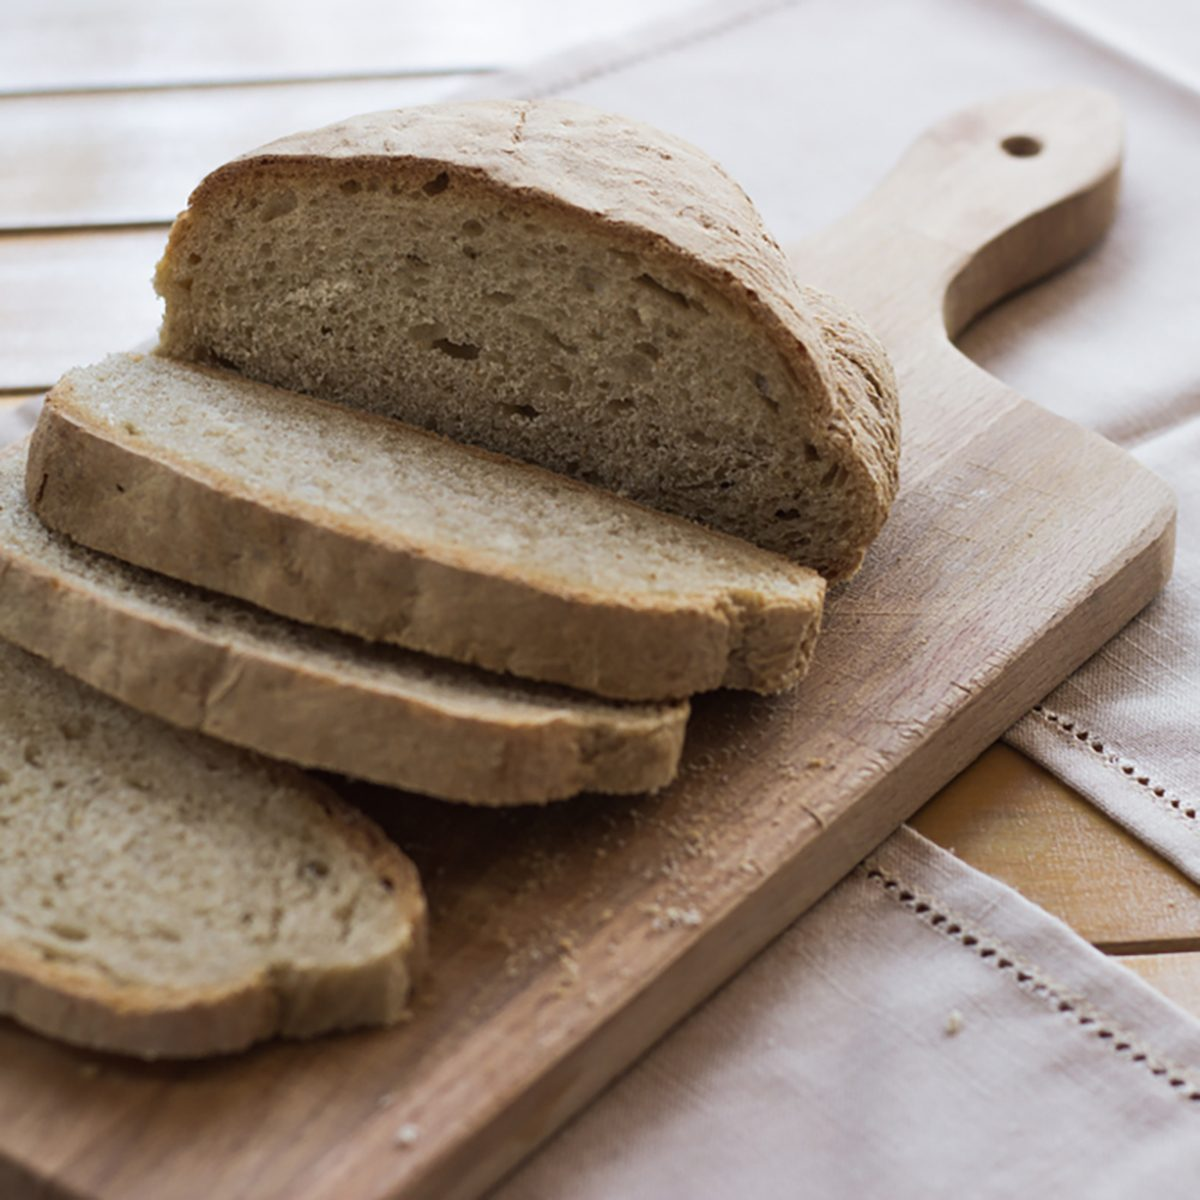 Bread and sliced bread on wooden cutting board on a table.